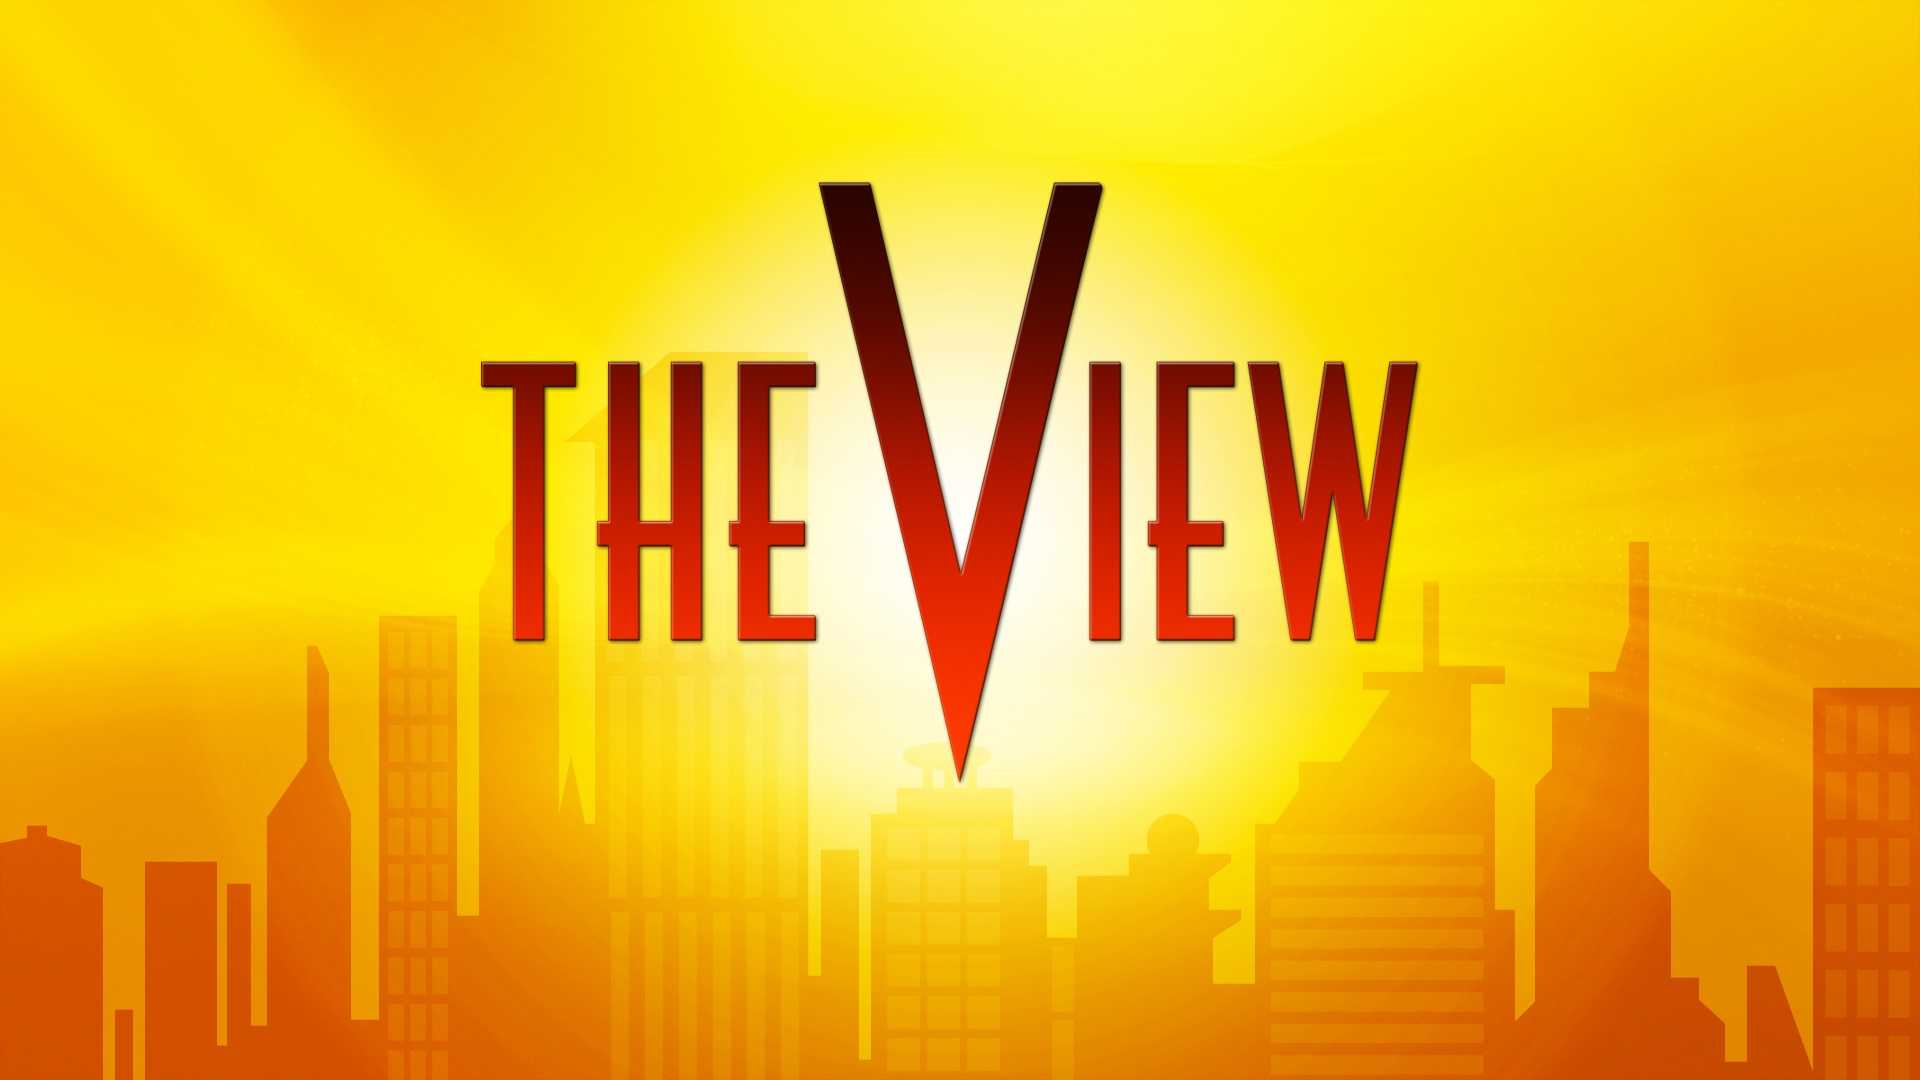 The View airs weekly at 11am only on WTAE Channel 4.